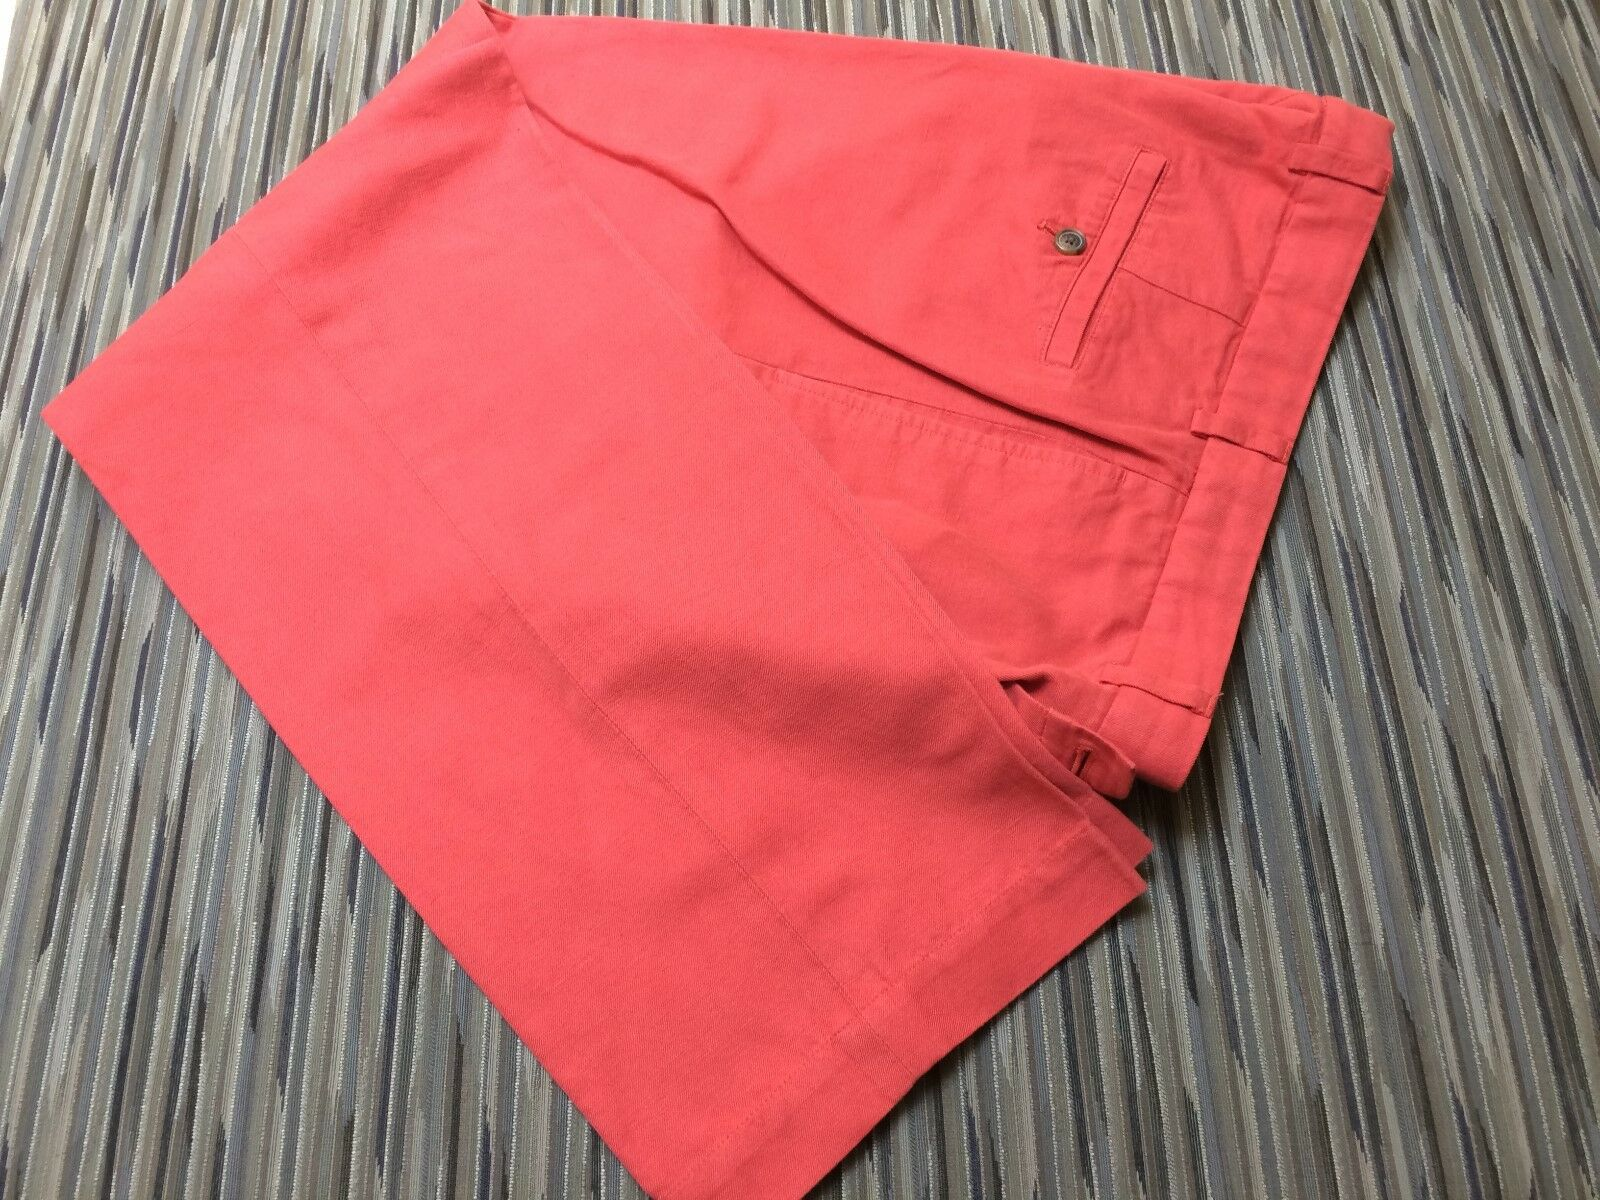 Brooks Bredhers 33 30 Linen Cotton Belnde Red Flat Front Pants